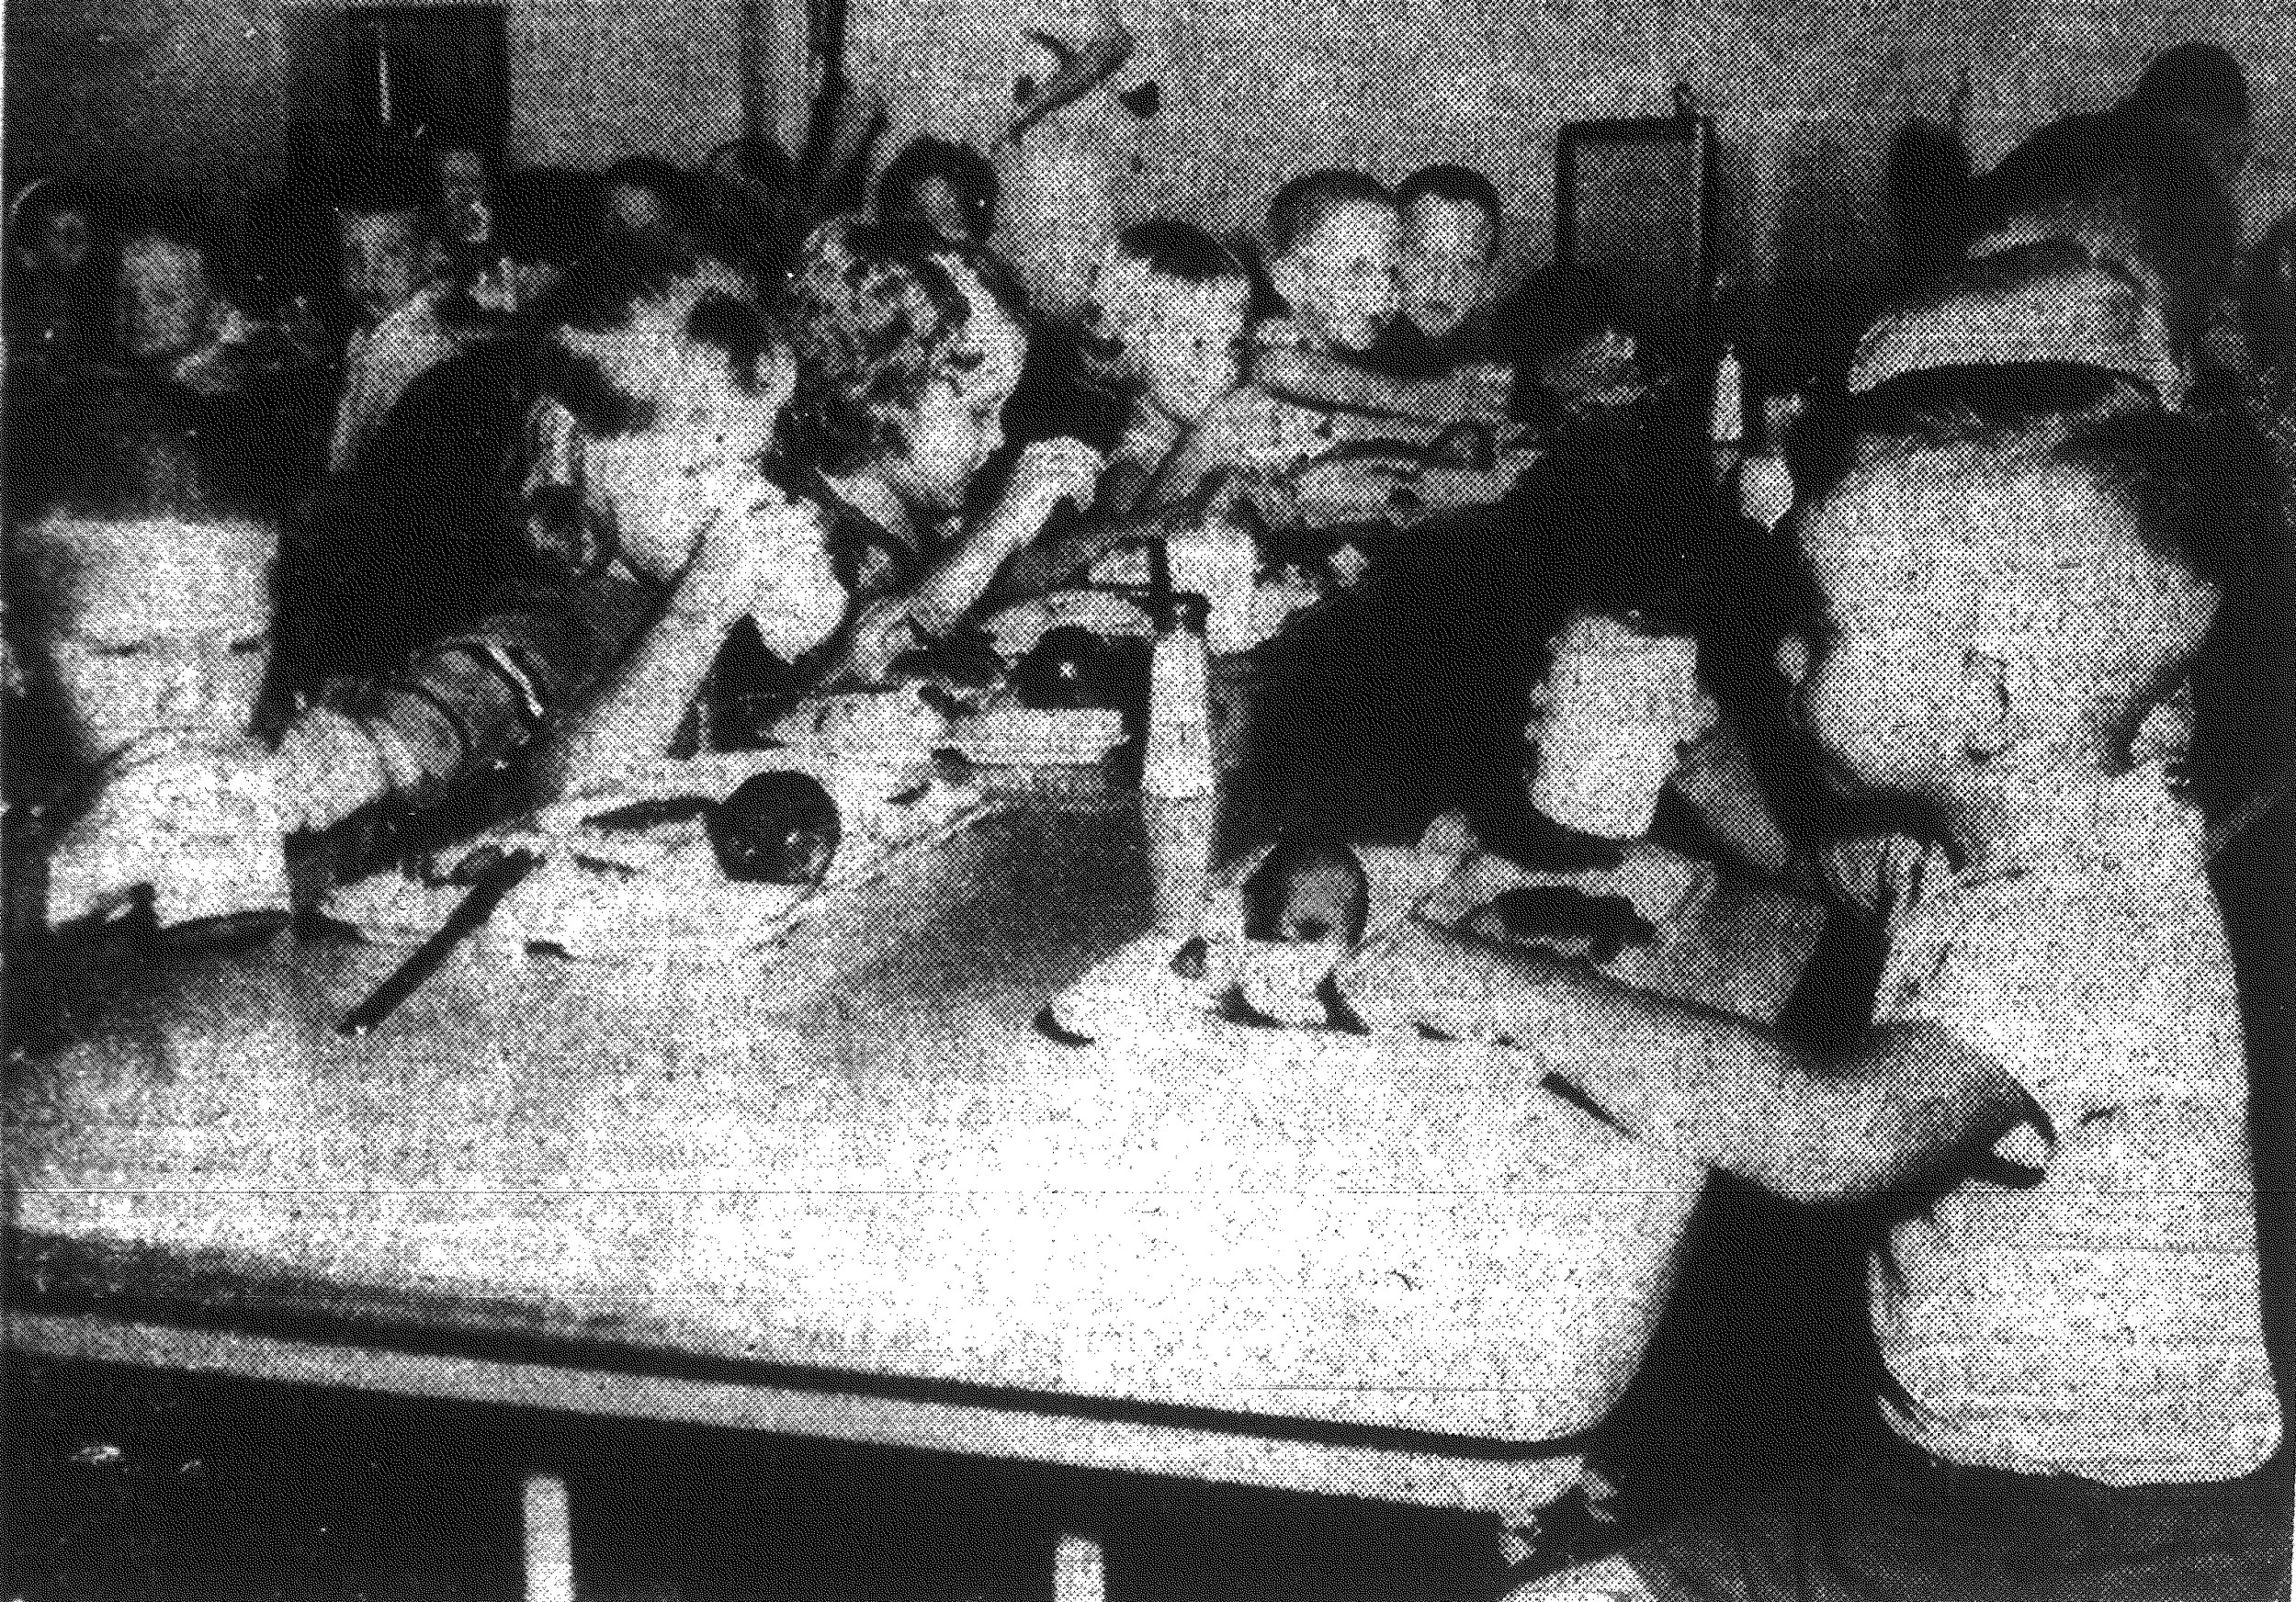 1967 - These growing schoolchildren will be among thousands who'll eat more than 2 million meals at Sumter County school cafeterias during the coming year.